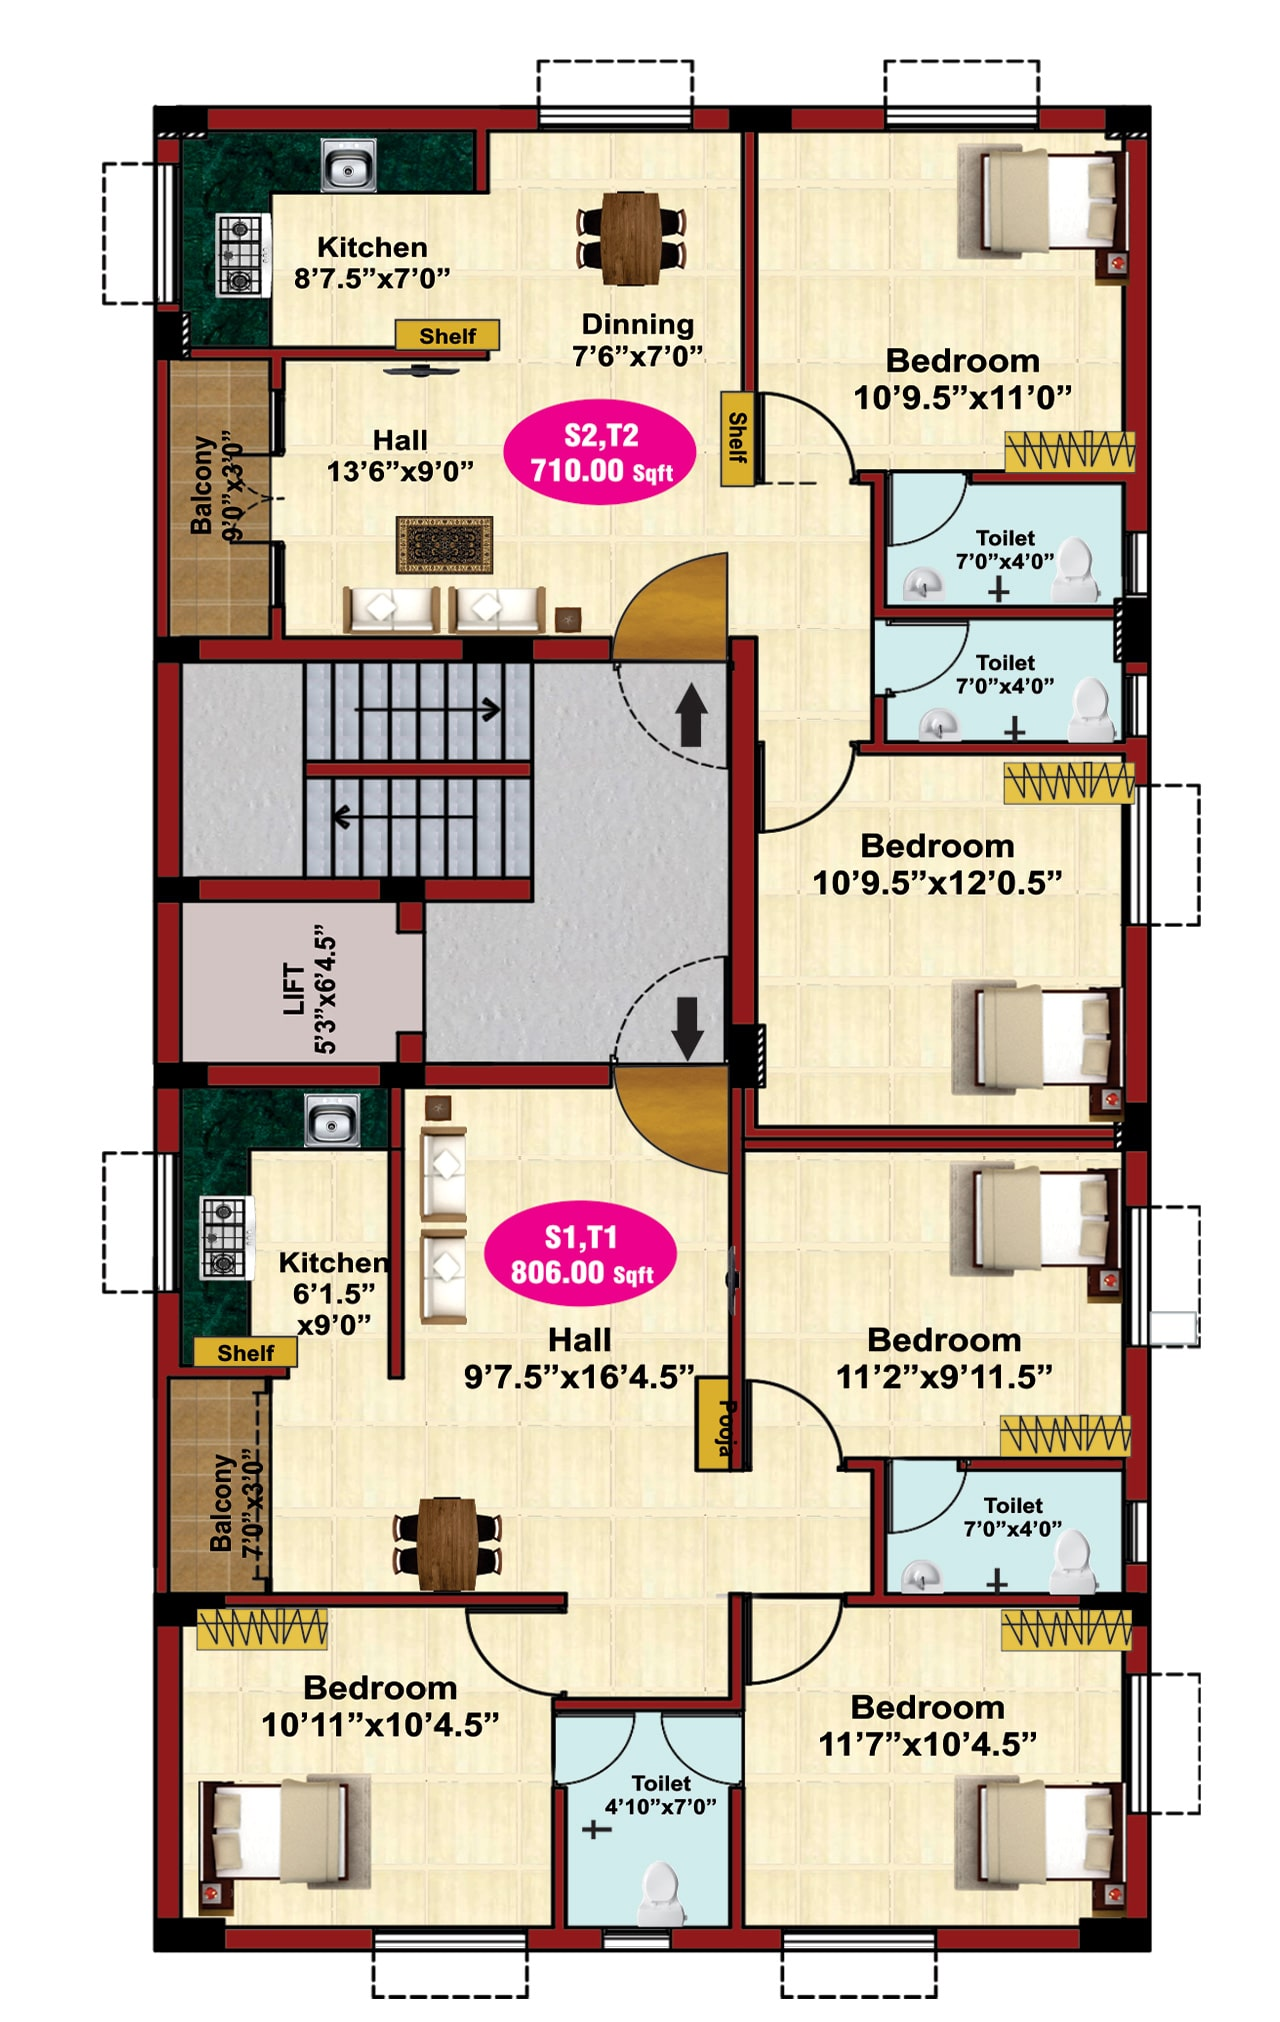 jkb-sri-dwaraka-2nd-3rd-floor-plan3